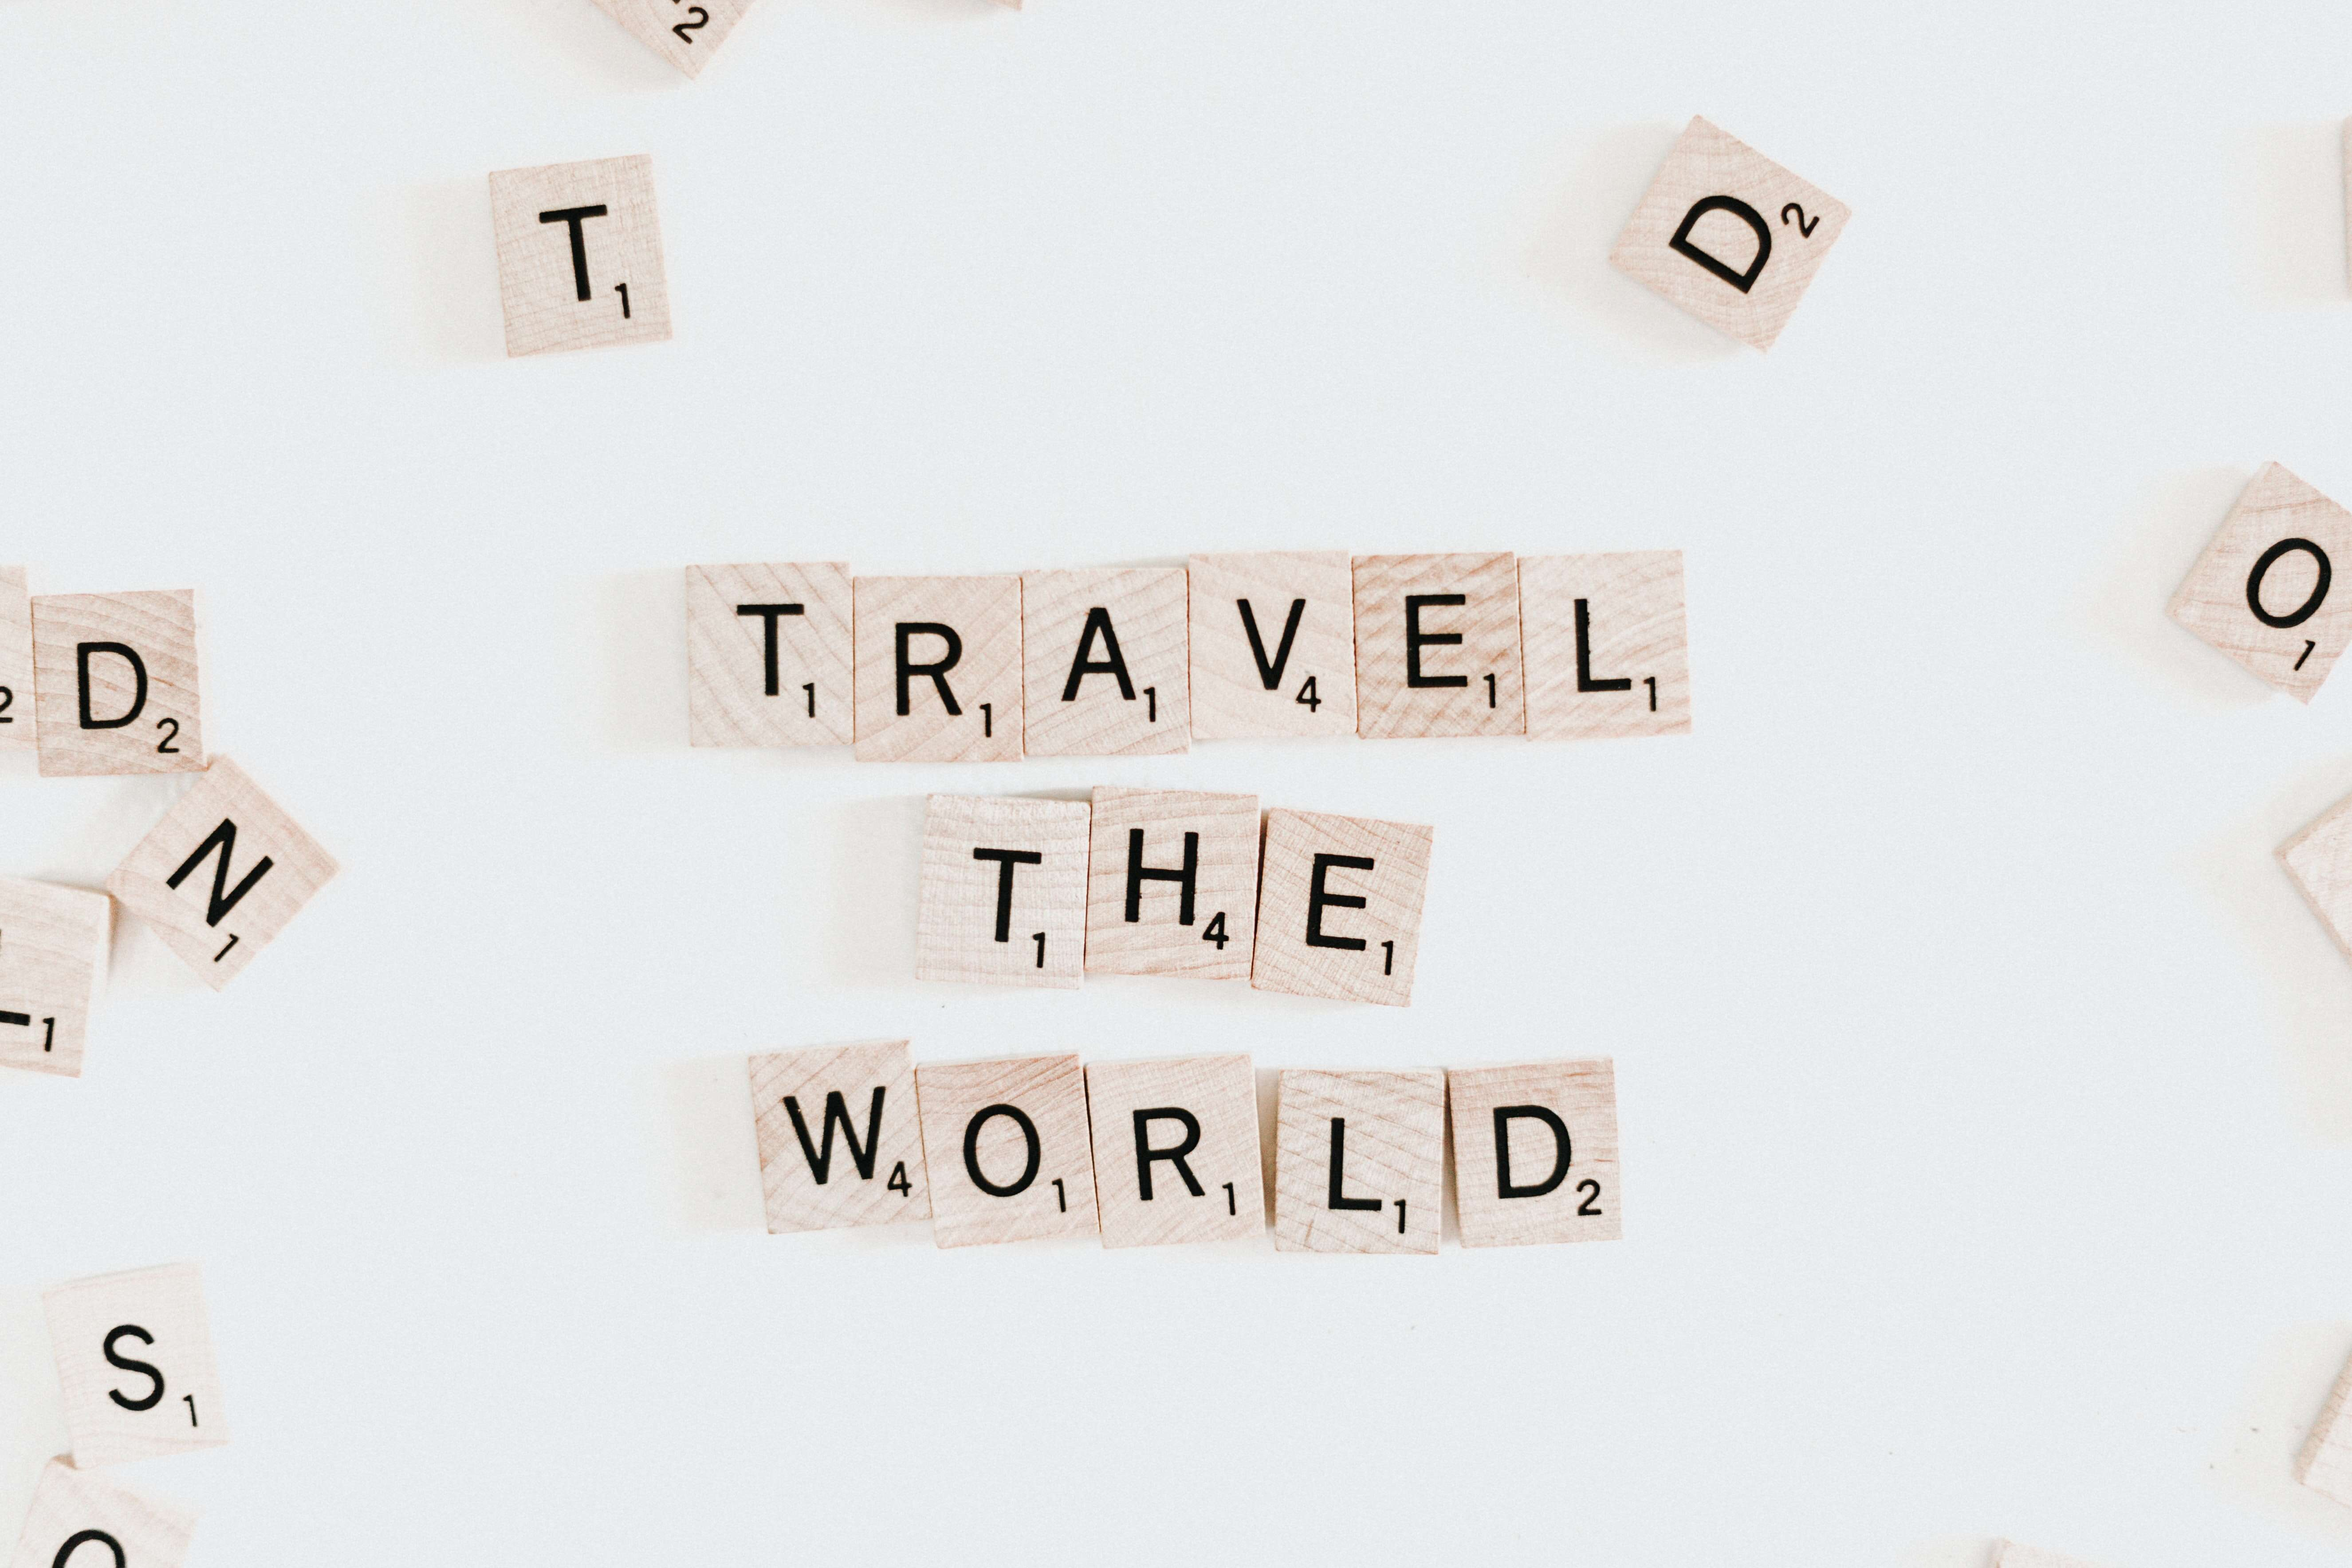 Welcome to World Class Travel's New Website and Travel Newsletter!